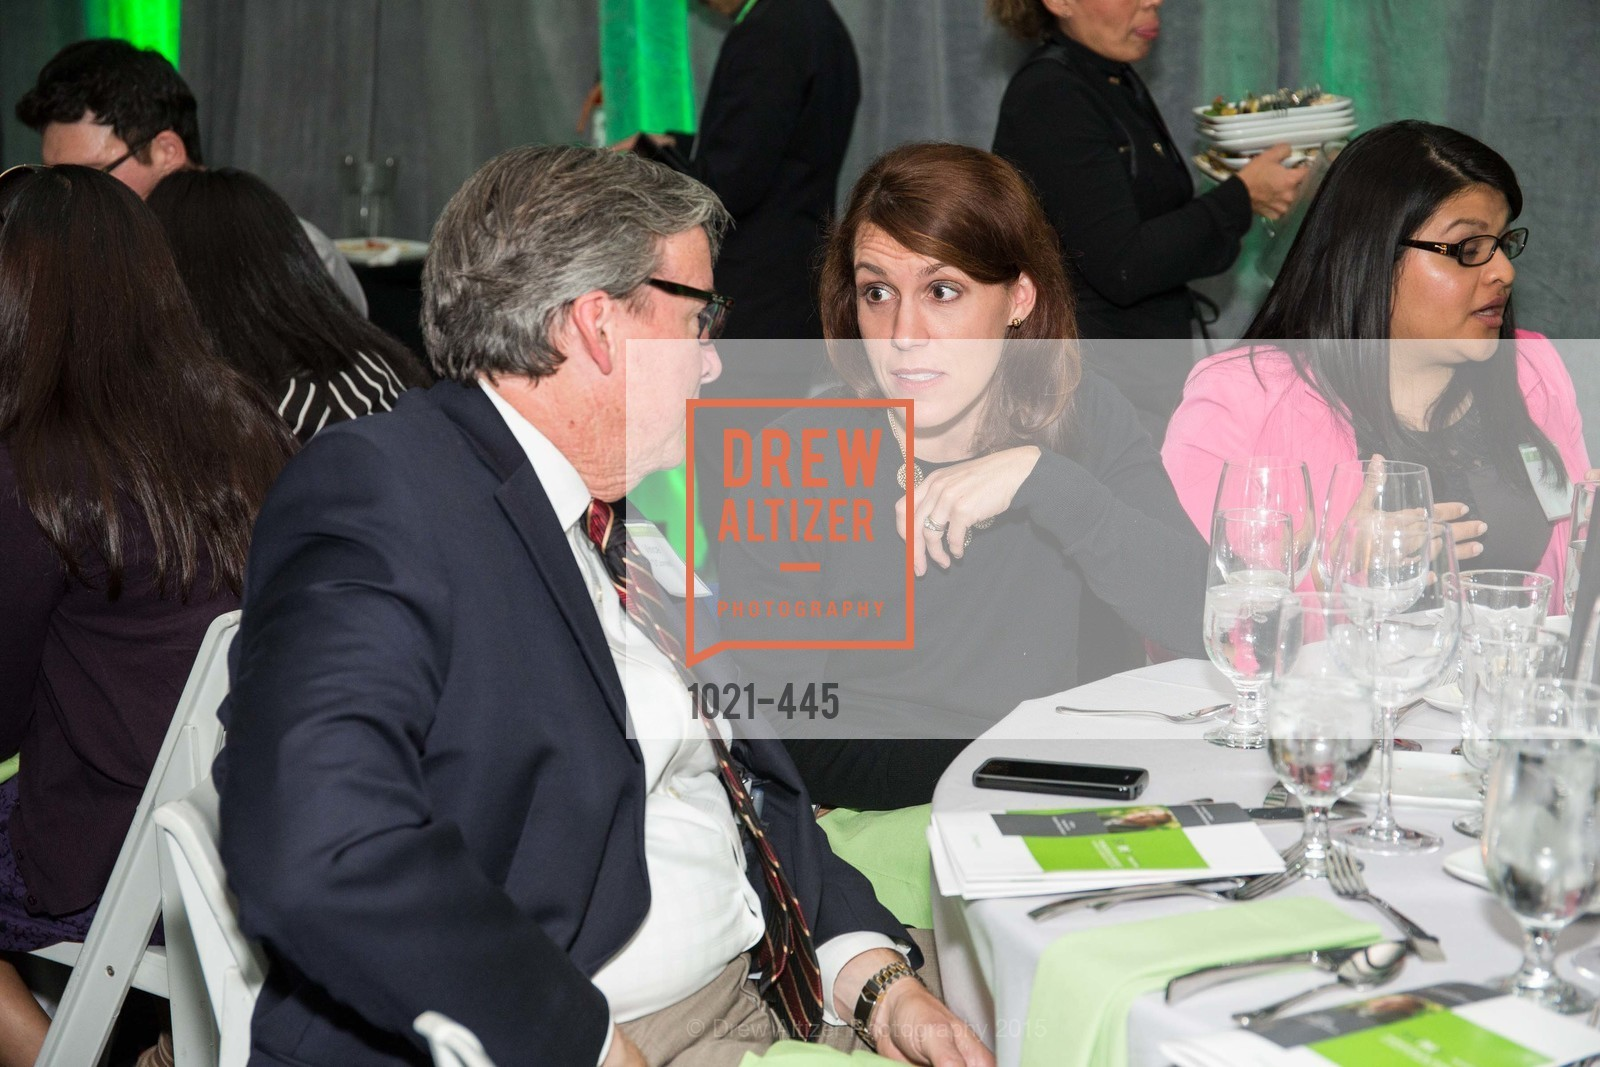 Extras, Silicon Valley Education Foundation's PIONEERS & PURPOSE, November 4th, 2015, Photo,Drew Altizer, Drew Altizer Photography, full-service agency, private events, San Francisco photographer, photographer california